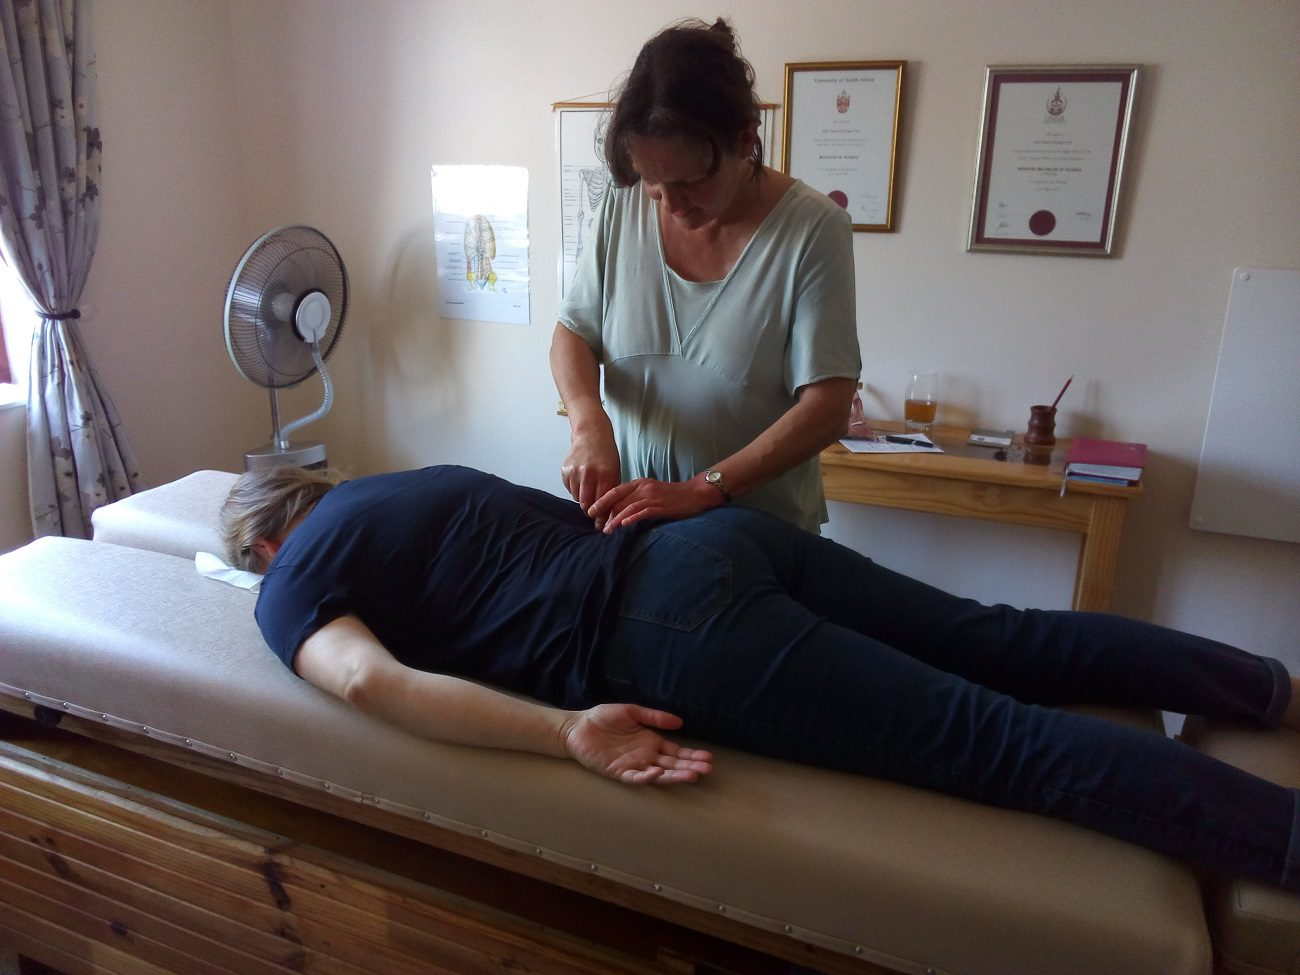 A neural pressure release practitioner giving a man lying on a massage bed a treatment